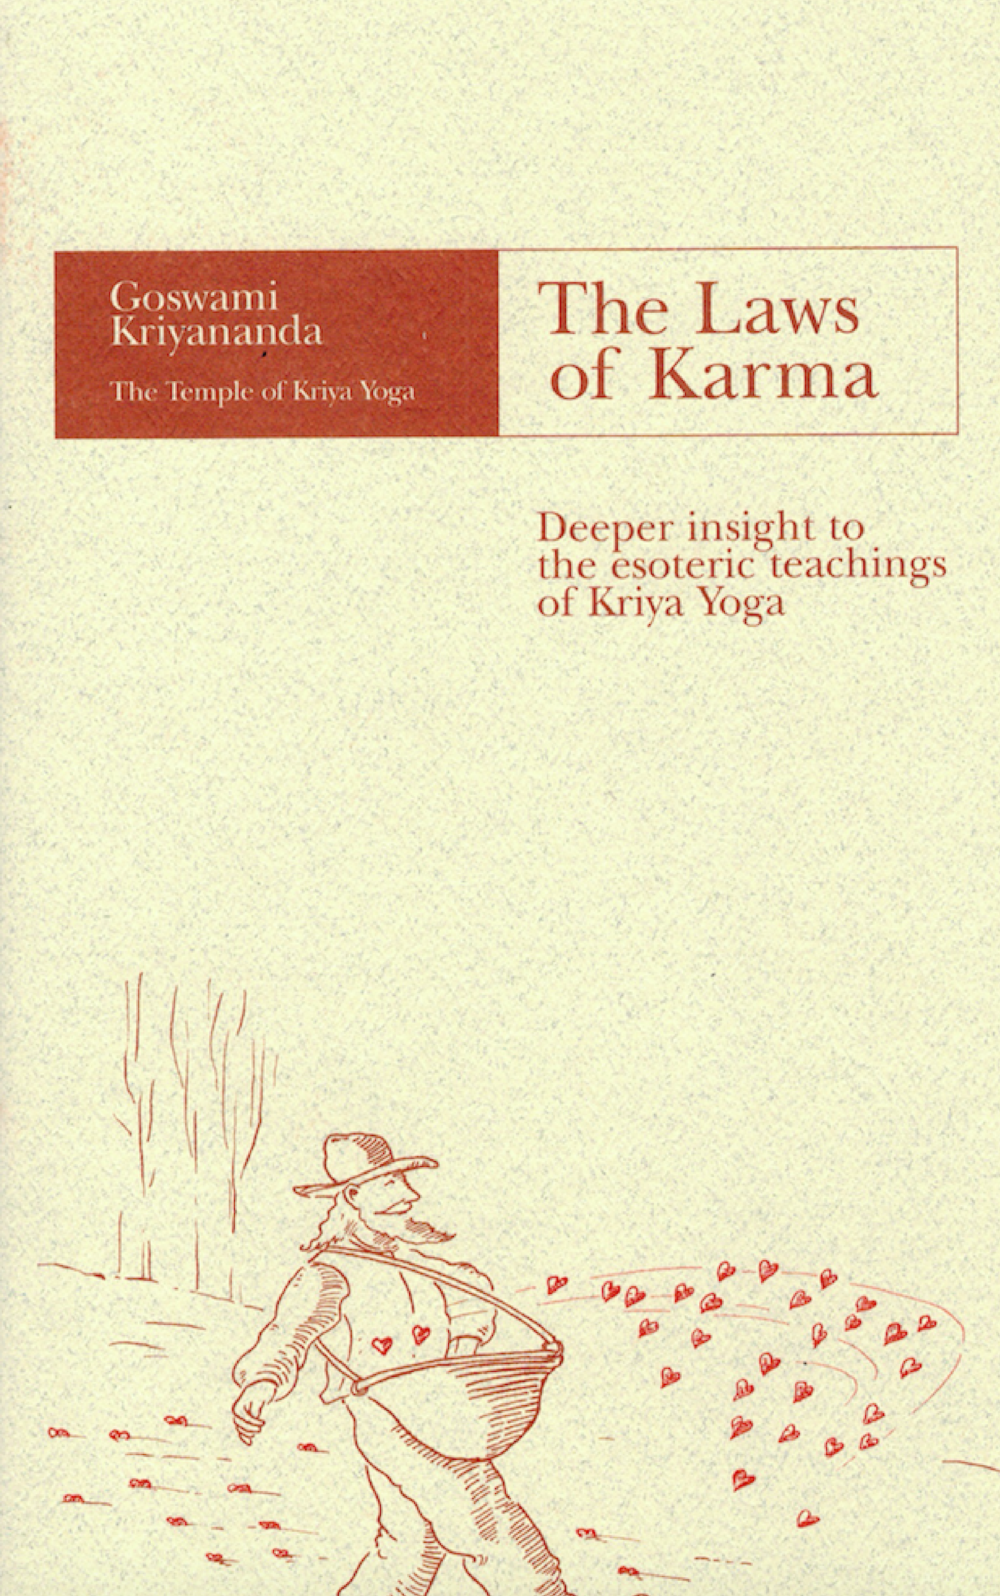 The Laws of Karma - $9.00